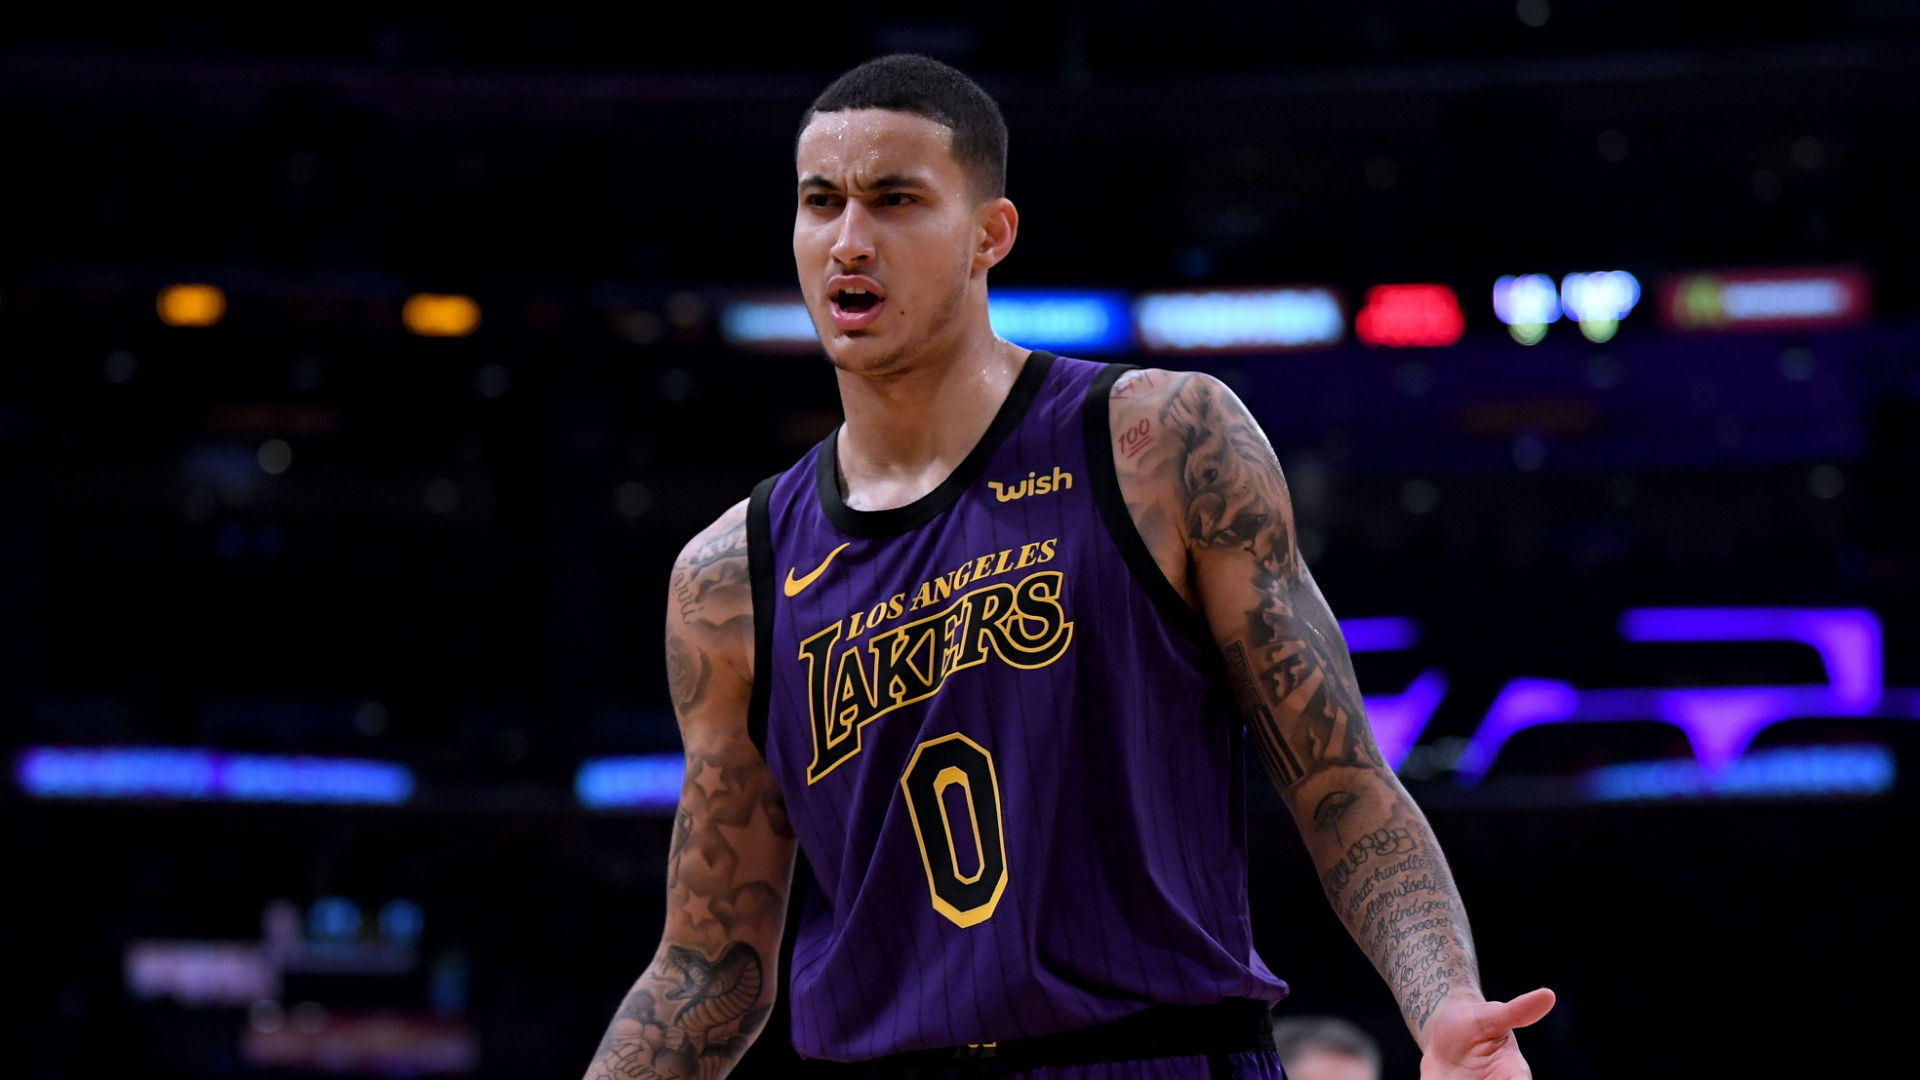 Kyle Kuzma injury update: Lakers forward's MRI reveals lower back contusion, report says